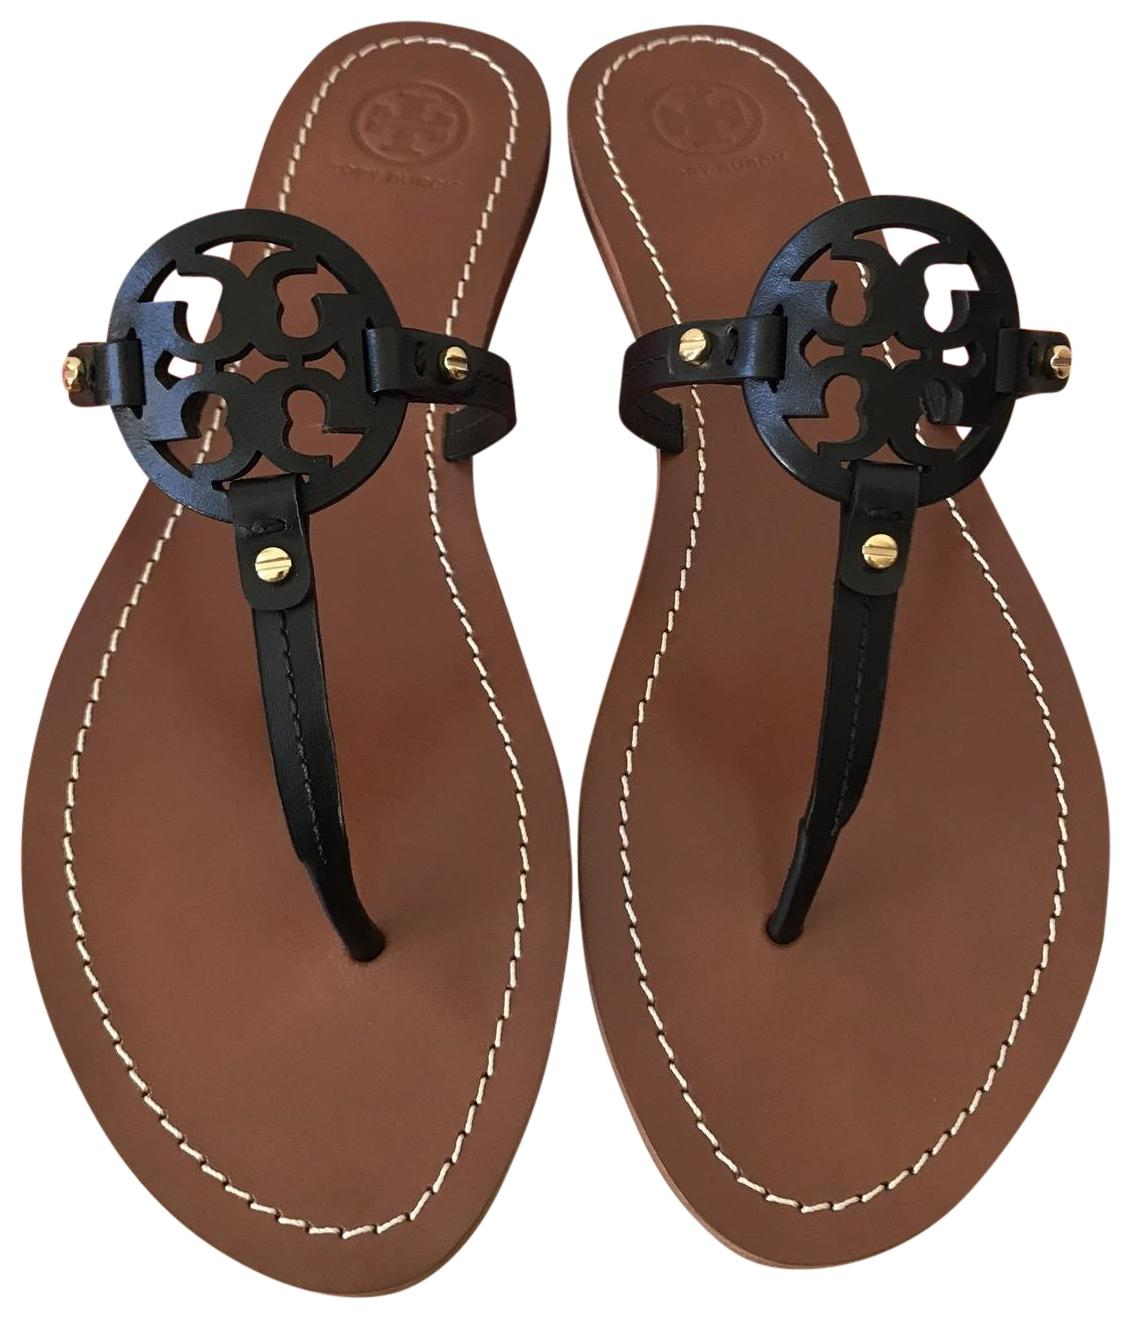 467794fef8f7 Tory Burch Black Mini Miller Flat Sandals Sandals Sandals Size US 9 Regular  (M